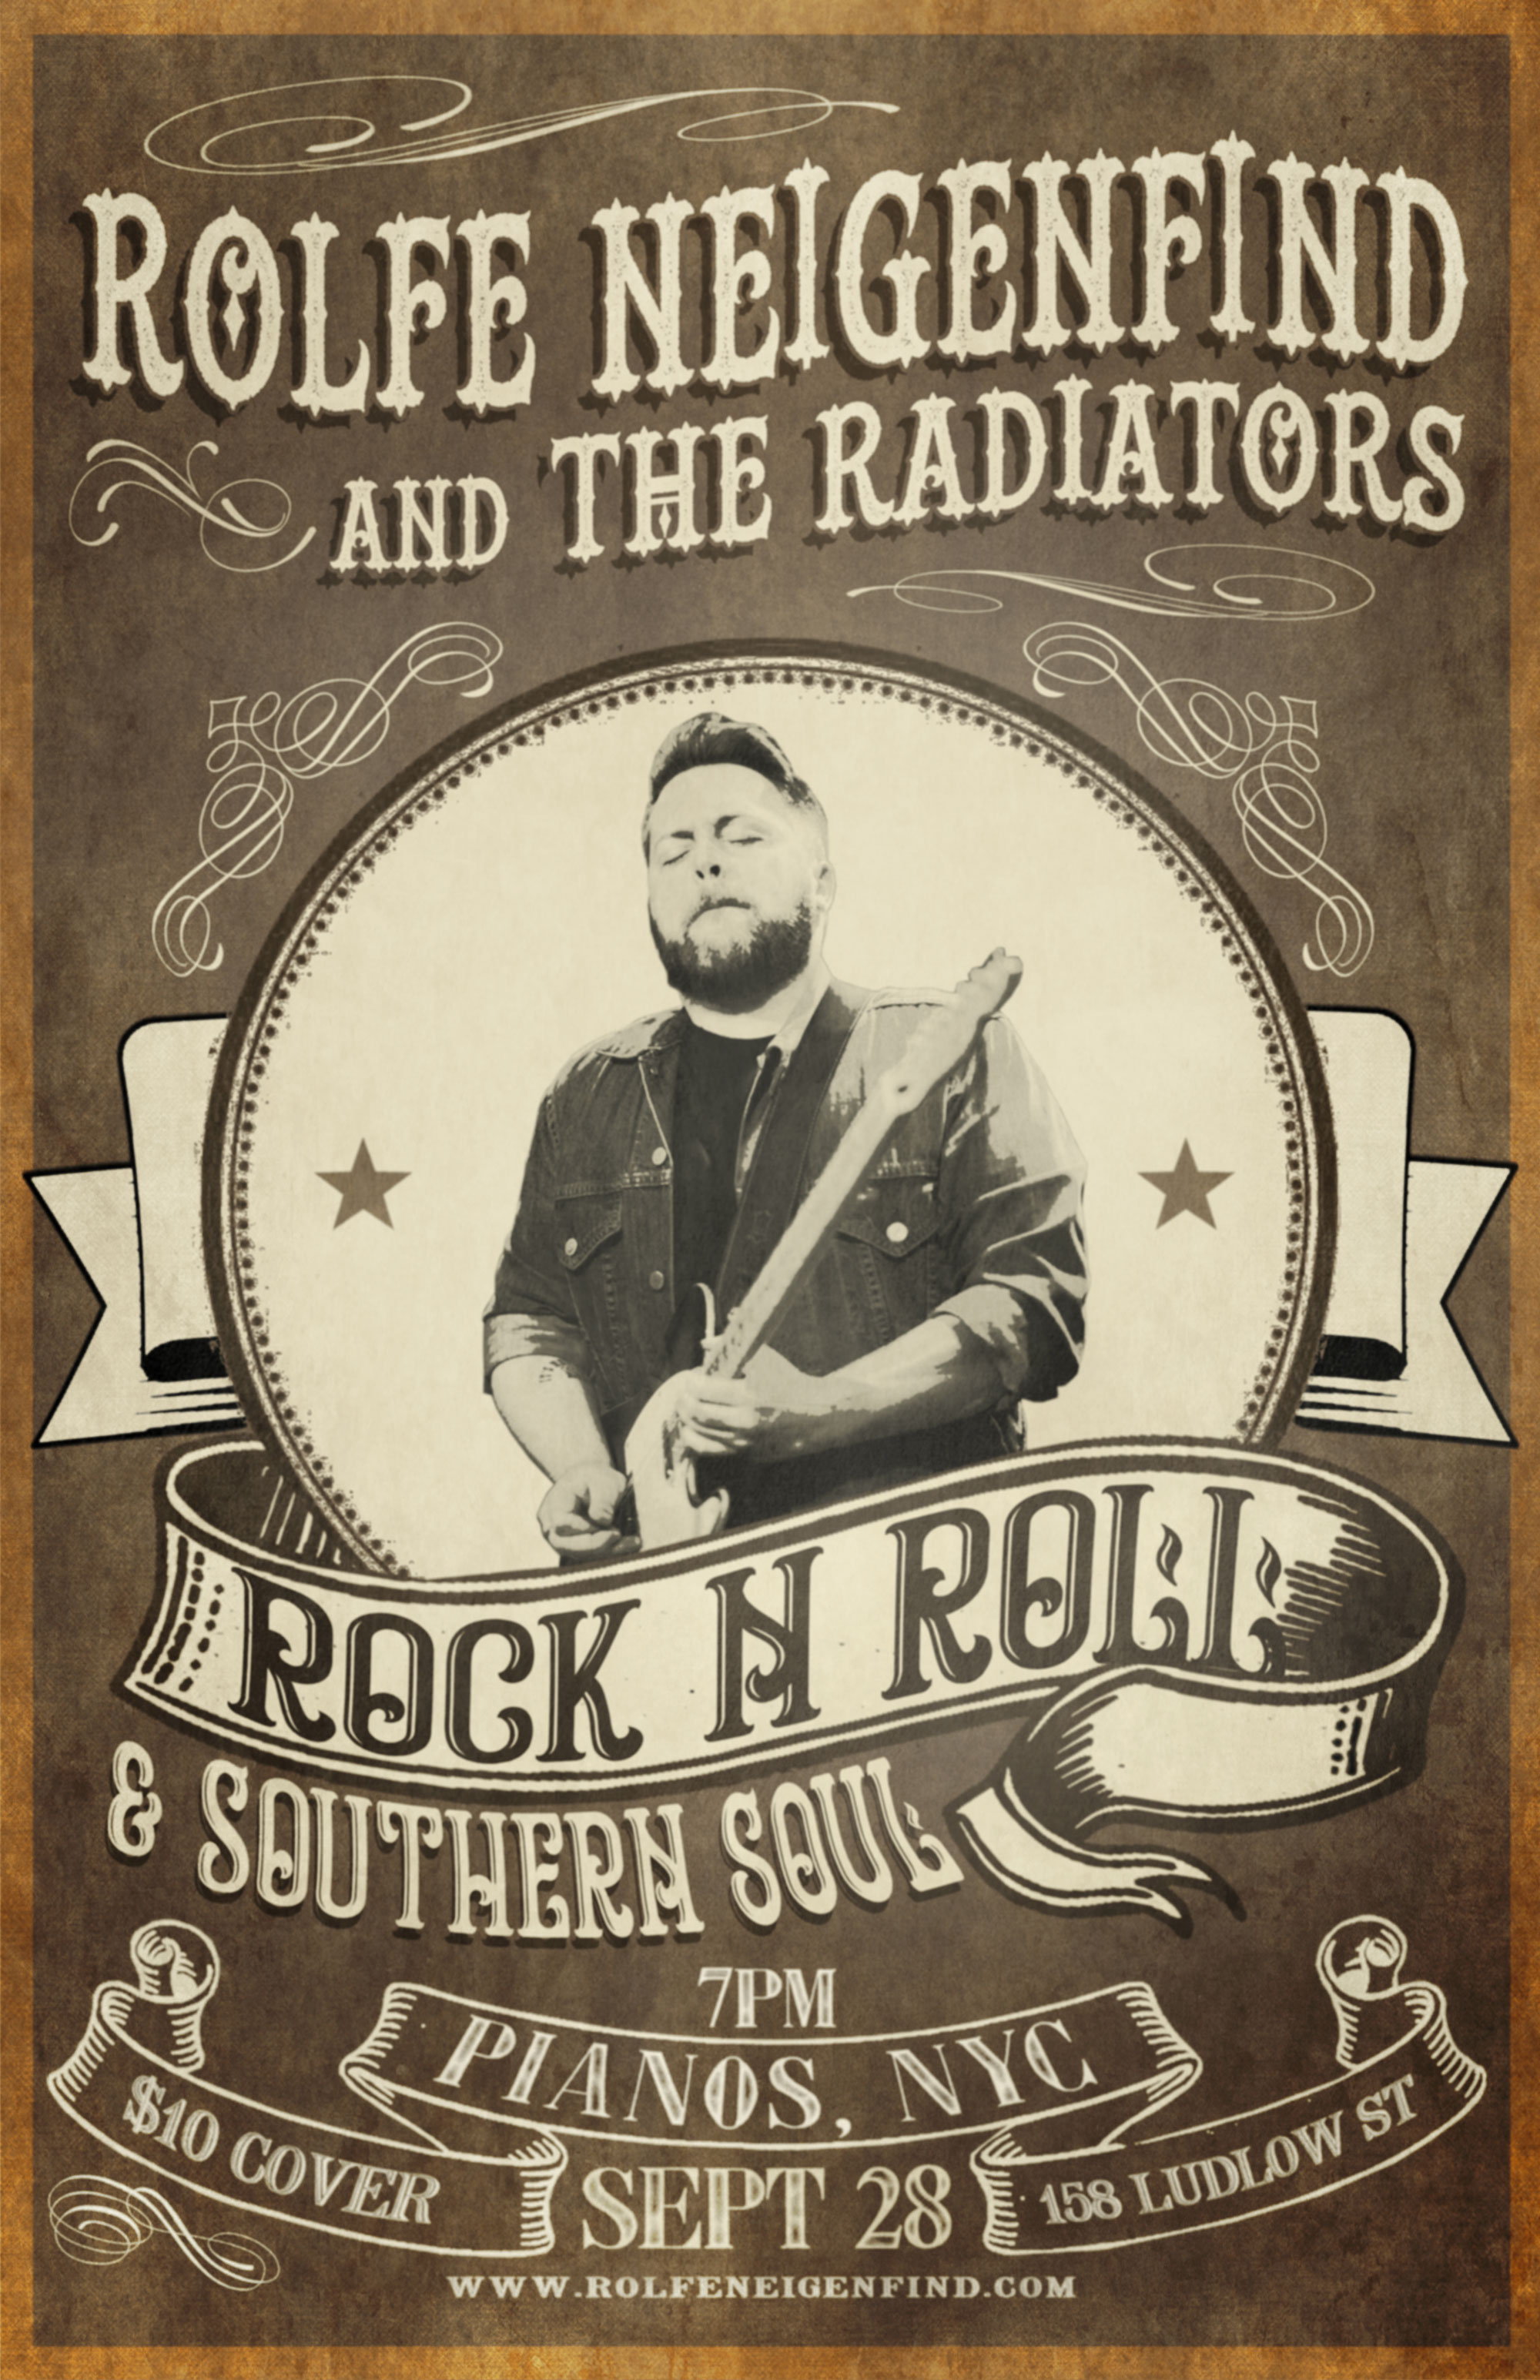 Come join Rolfe & The Radiators later this month at Pianos 9/28!